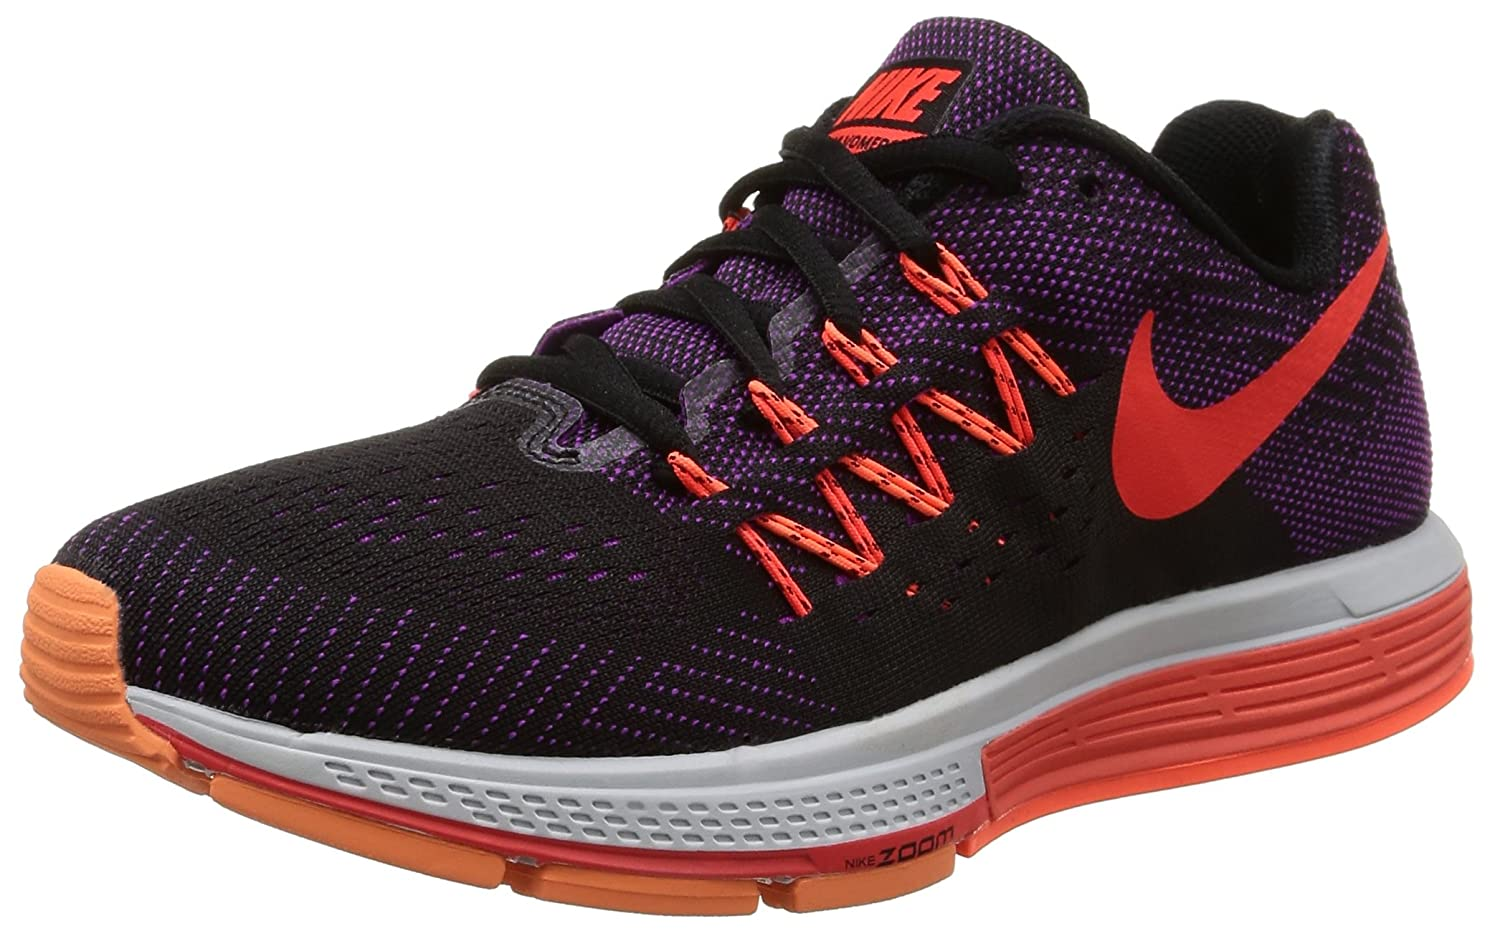 10Women's Vomero Zoom Wmns Shoes Nike Sports Air fgY76vyb